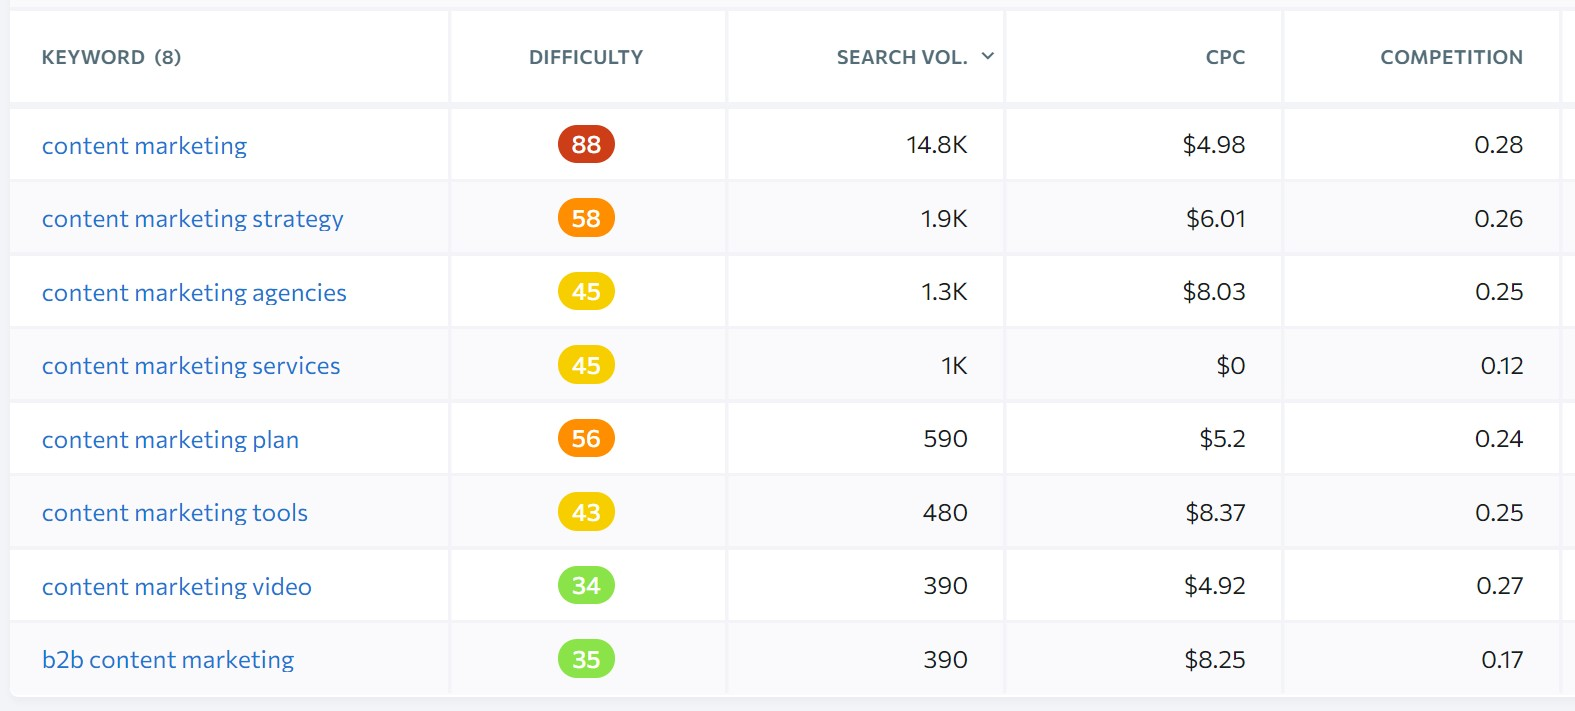 long tail keywords are less competitive